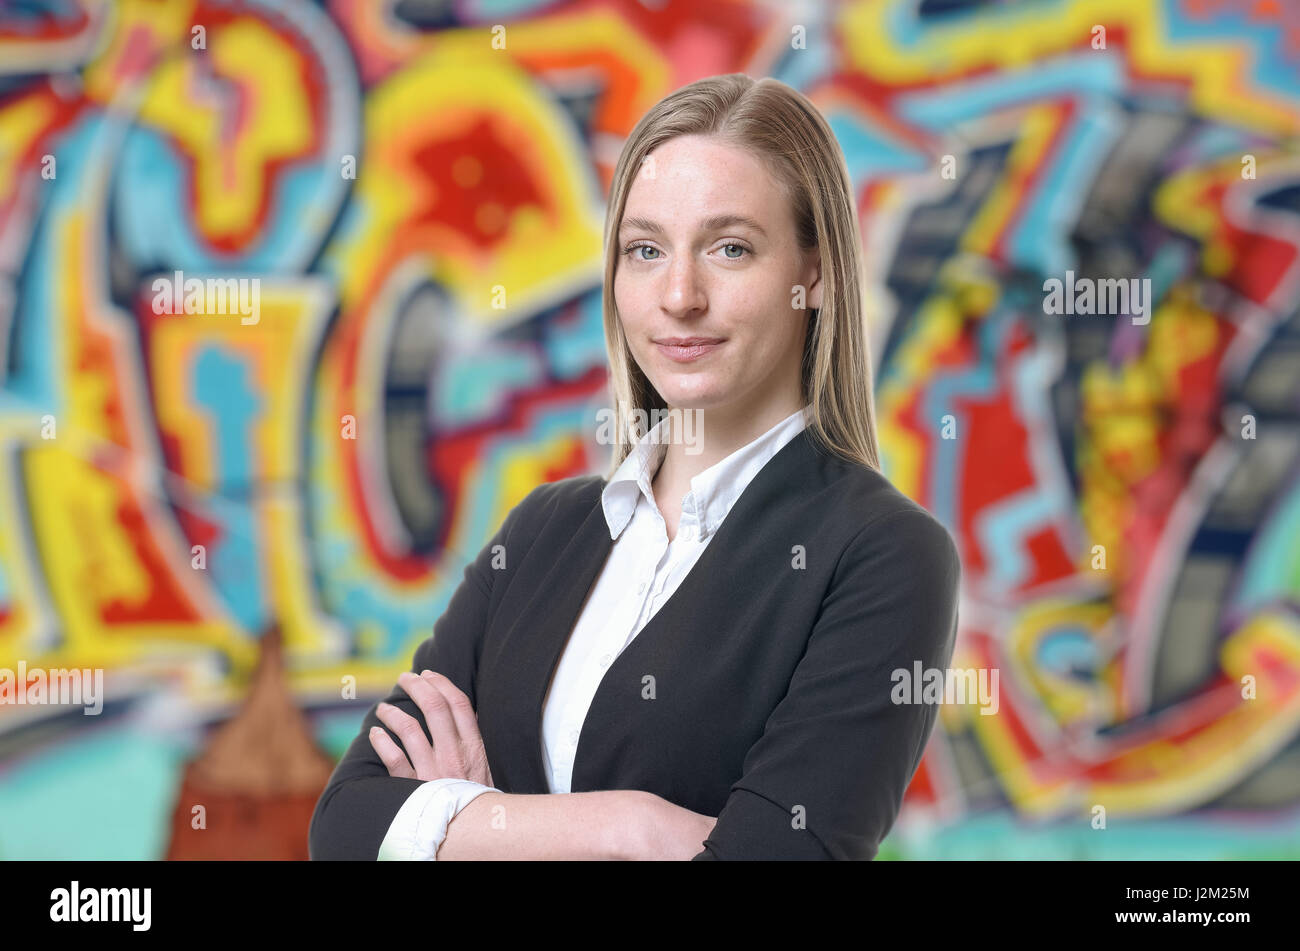 Confident grinning blond woman in sweater and white shirt with folded arms. Colorful graffiti art in background. - Stock Image